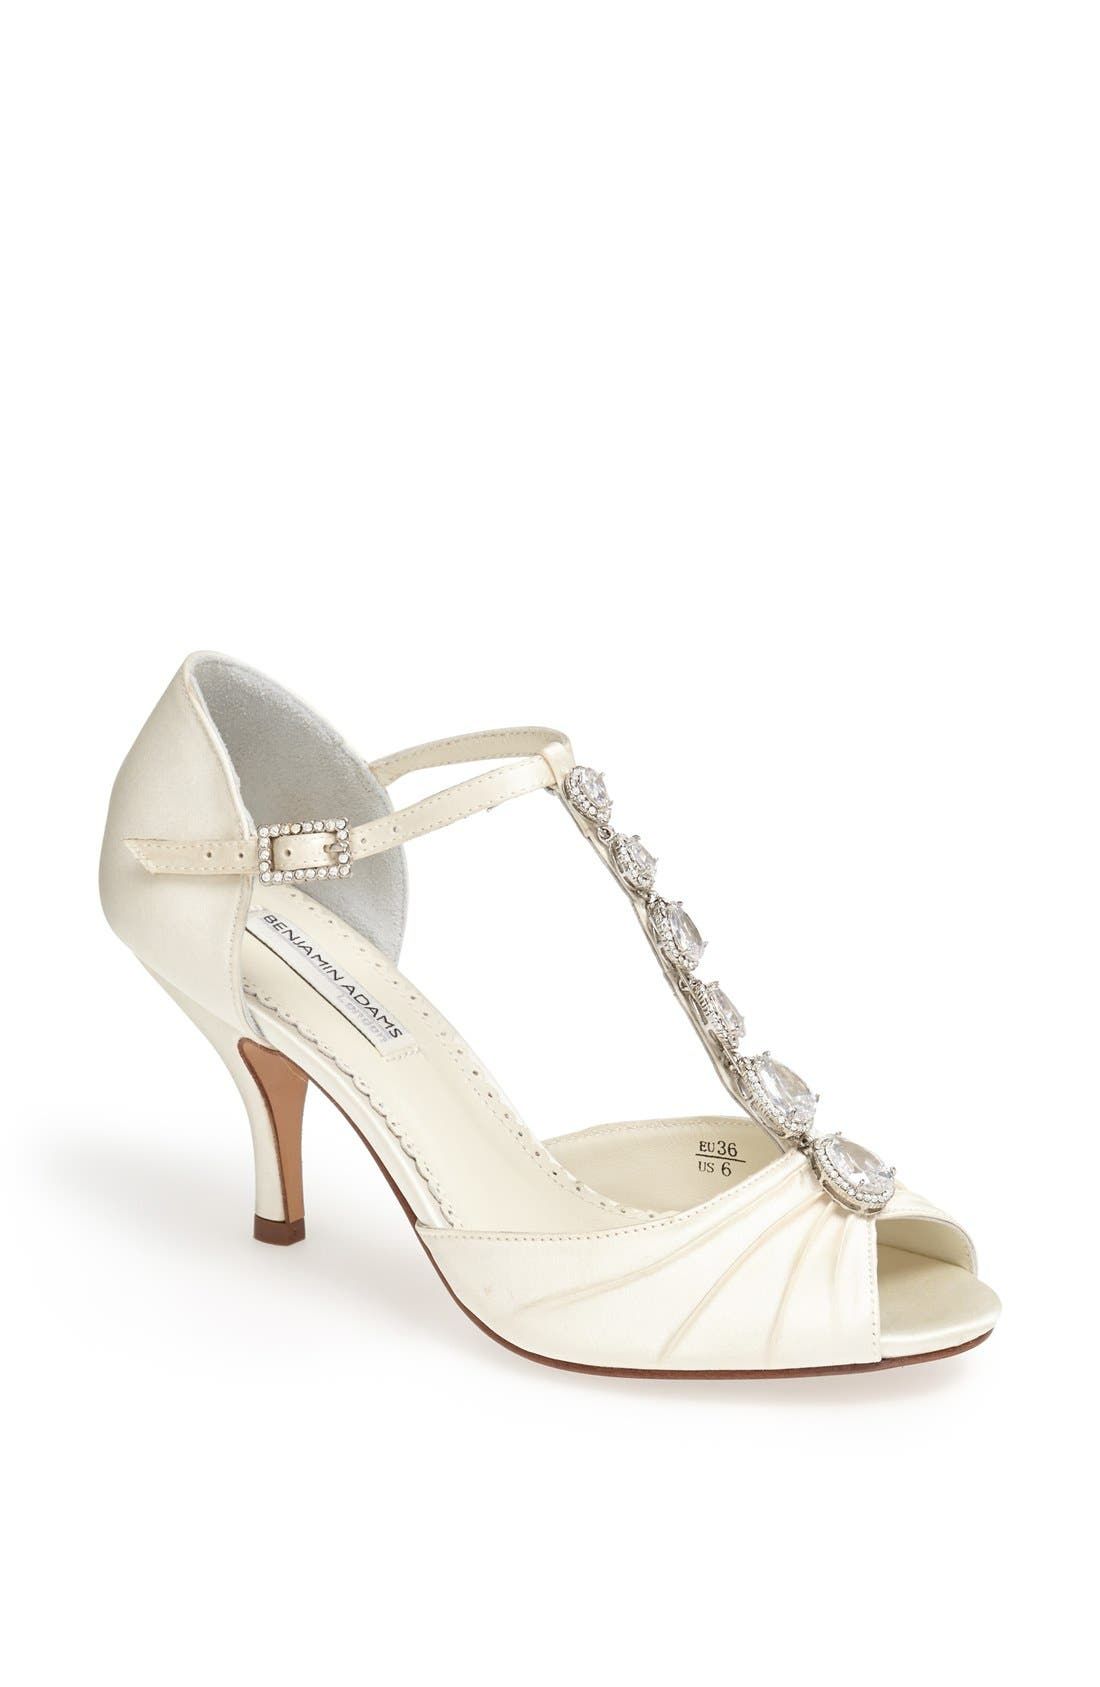 Alternate Image 1 Selected - Benjamin Adams London 'Mia' Crystal Embellished Sandal